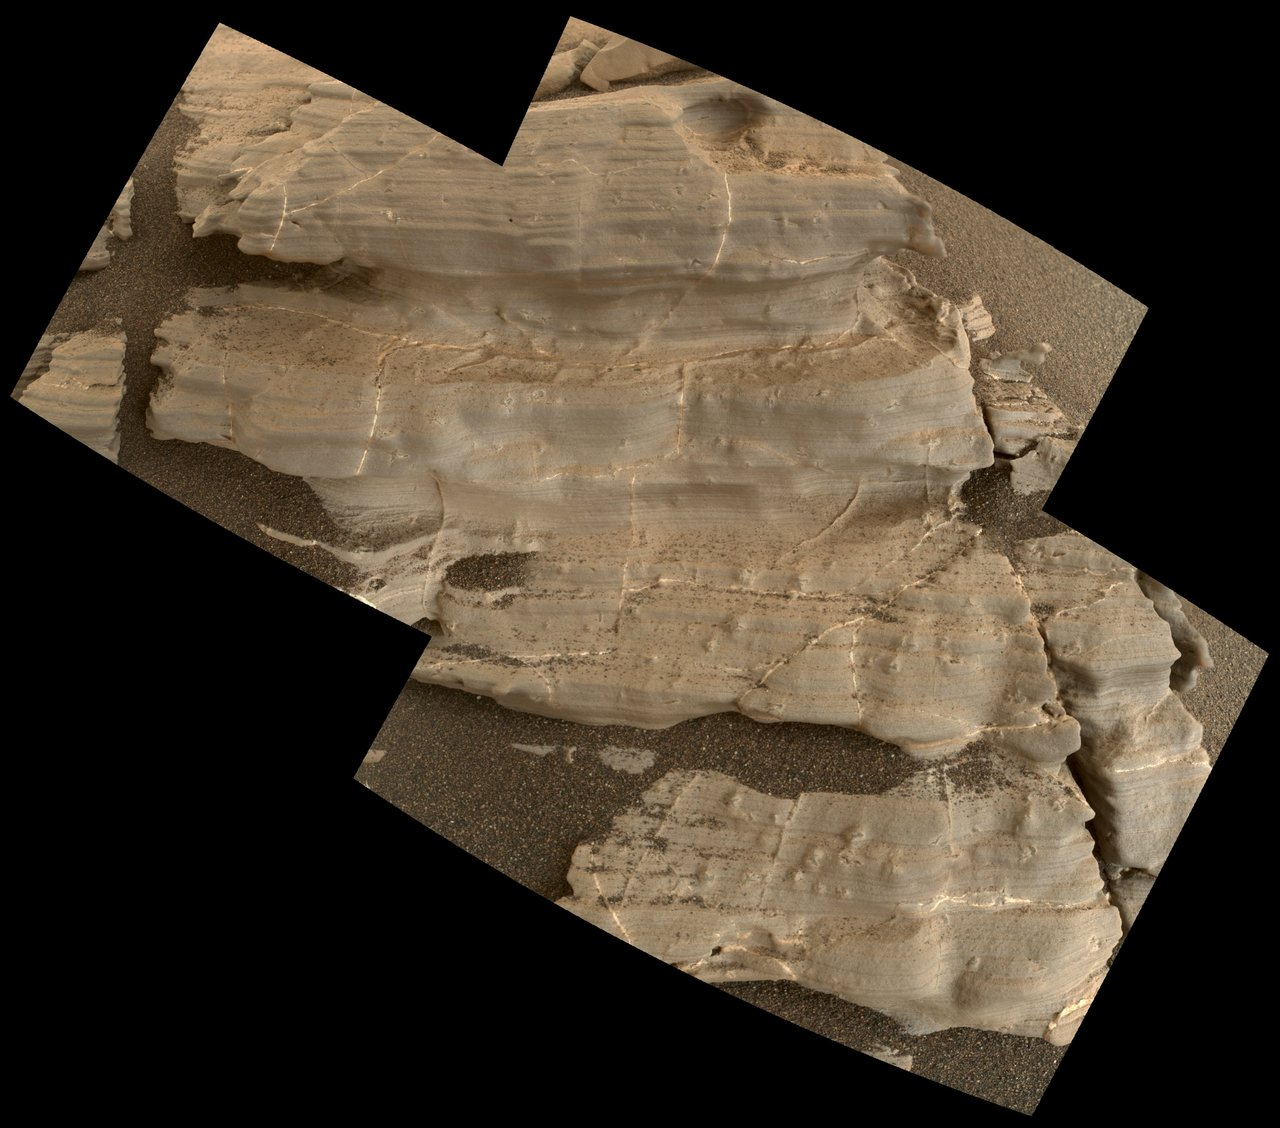 "This exposure of finely laminated bedrock on Mars includes tiny crystal-shaped bumps, plus mineral veins with both bright and dark material. This rock target, called ""Jura,"" was imaged by the MAHLI camera on NASA's Curiosity Mars rover on Jan. 4, 2018, during Sol 1925 of the mission. Credits: NASA/JPL-Caltech/MSSS